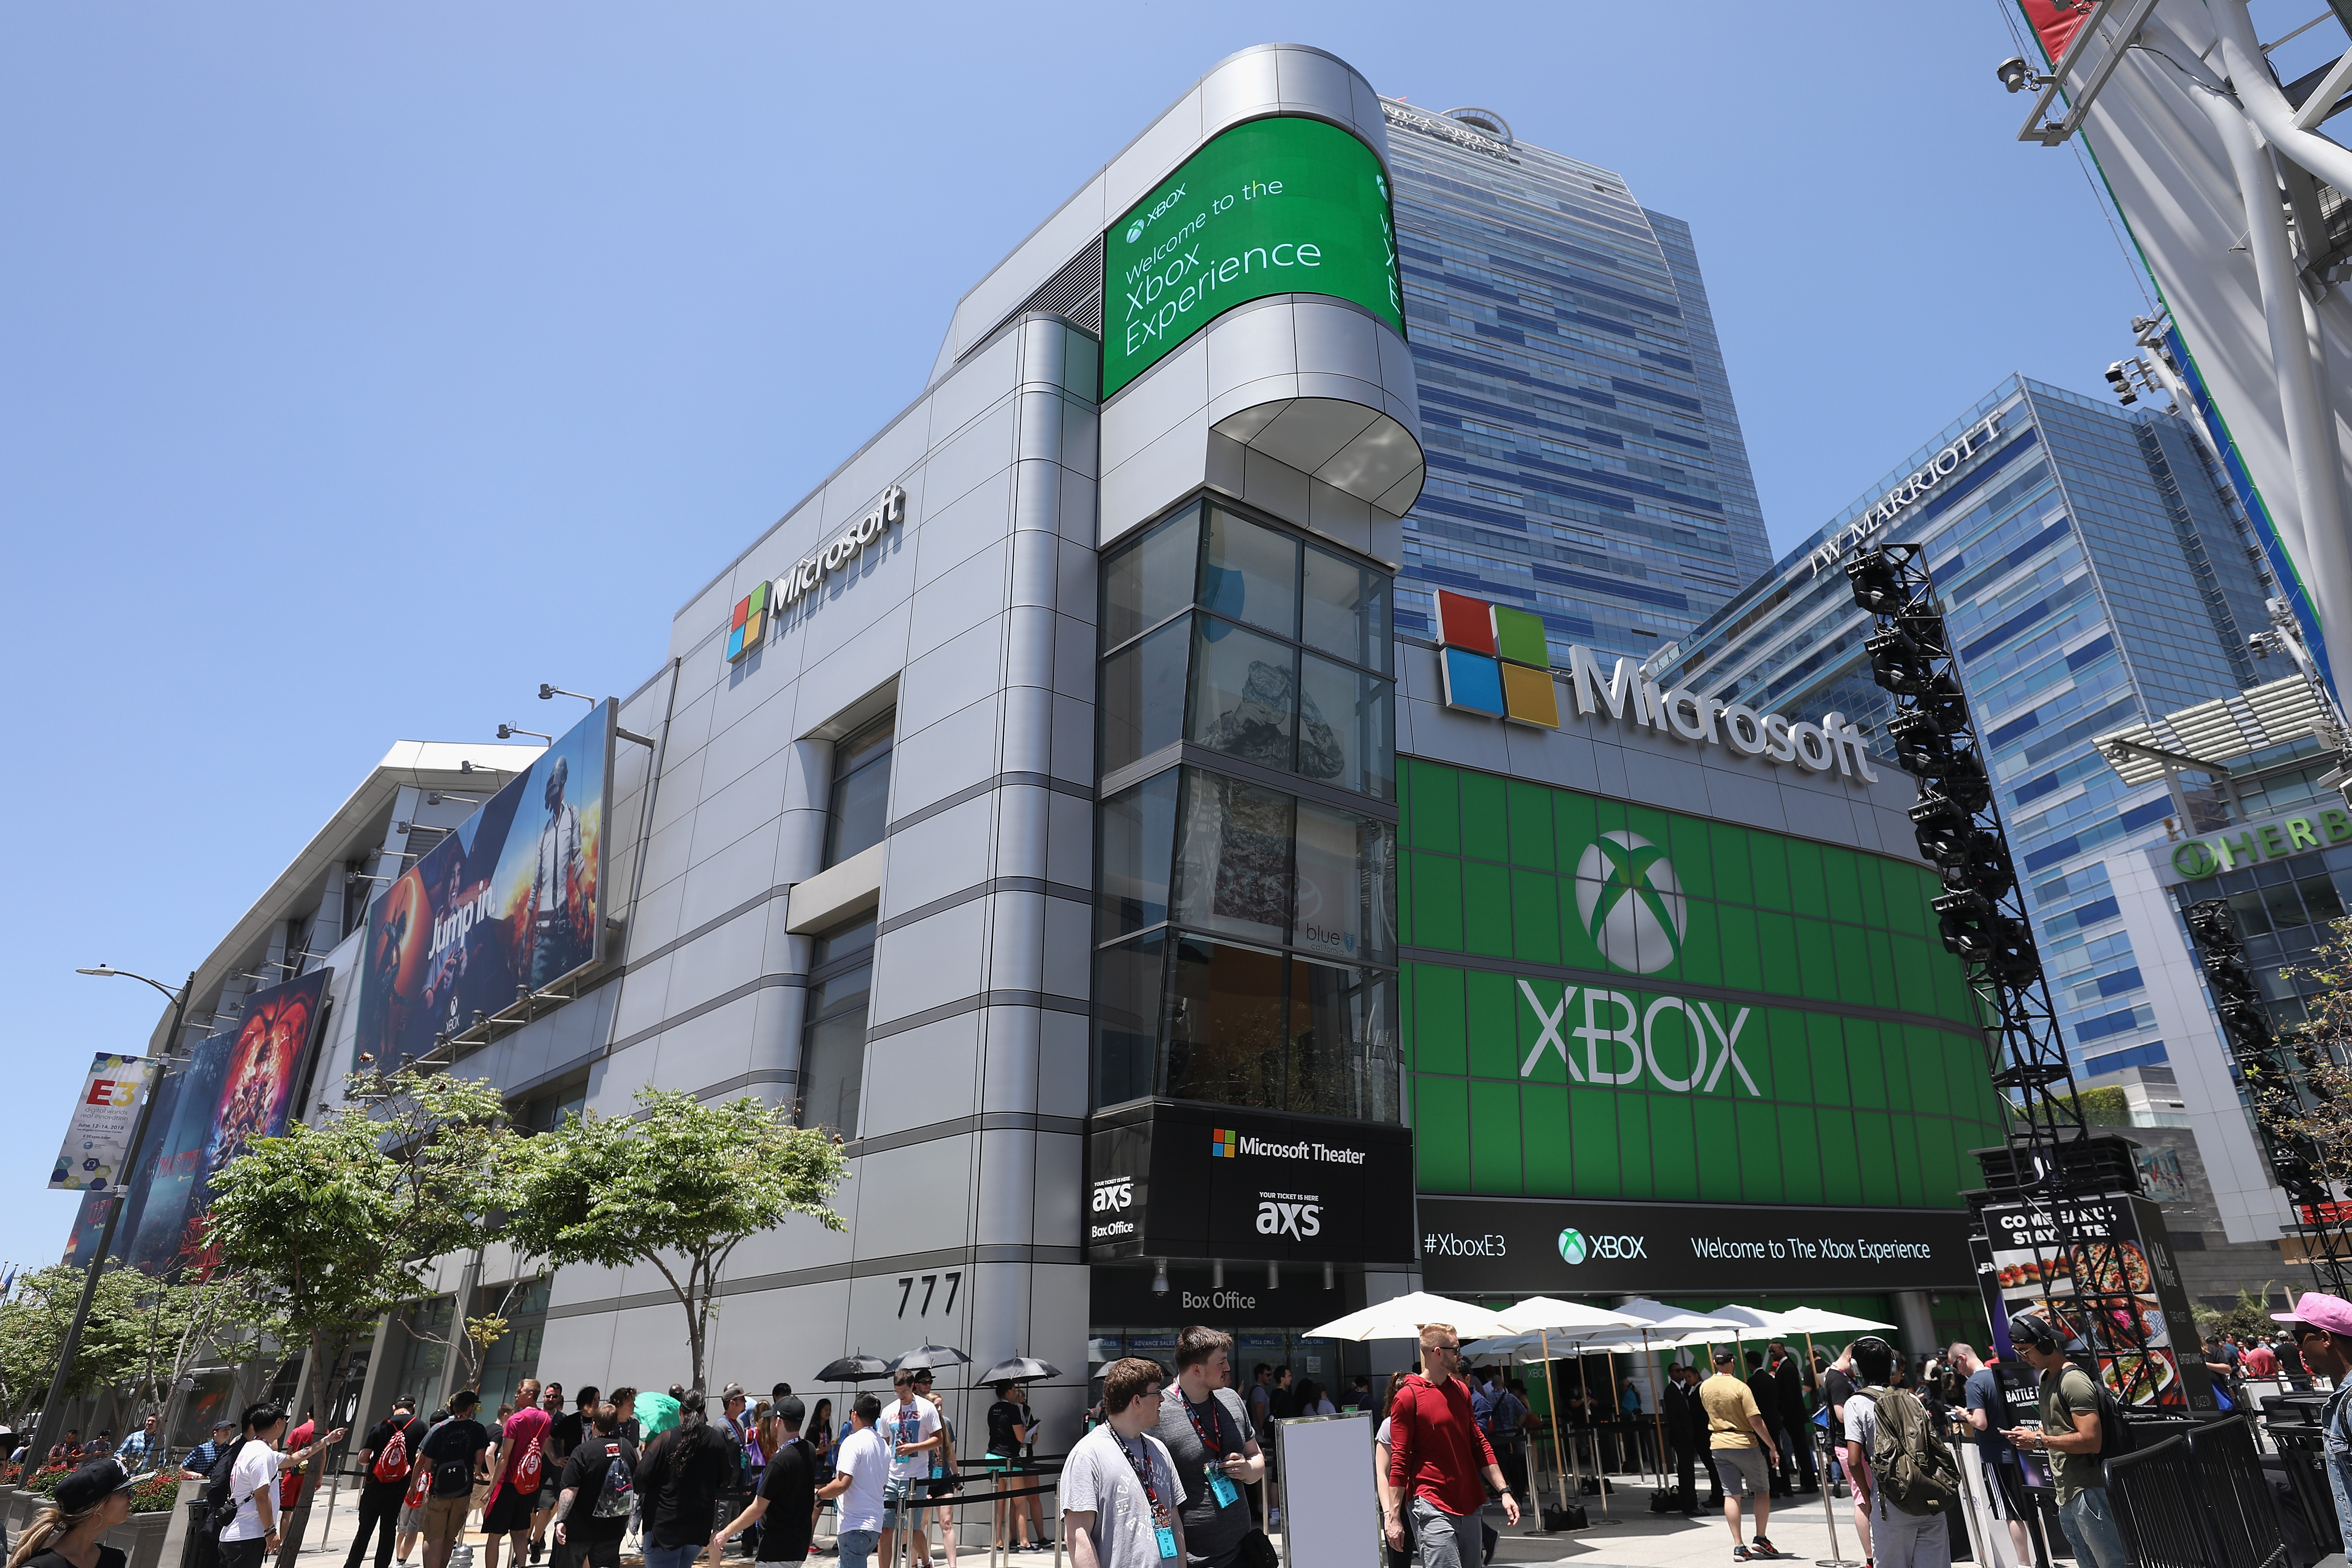 LOS ANGELES, CA - JUNE 12:  Game enthusiasts and industry personnel gather outside of the Microsoft Theater for the 'XBox' experience during the Electronic Entertainment Expo E3 on June 12, 2018 in Los Angeles, California.  (Photo by Christian Petersen/Getty Images)